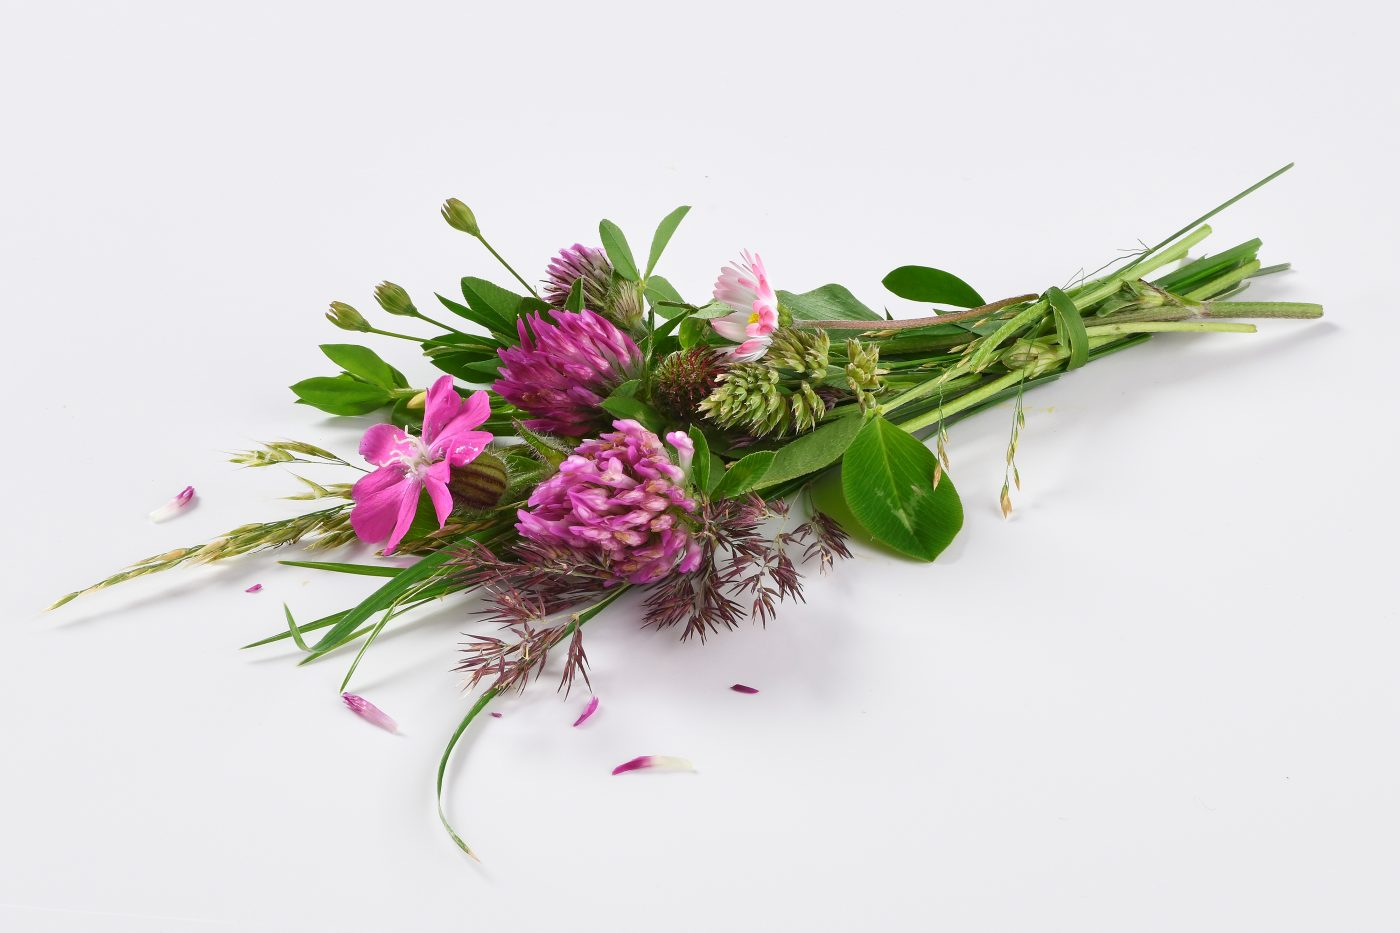 a bunch of pink meadow flowers for cheese production are lying on a white background